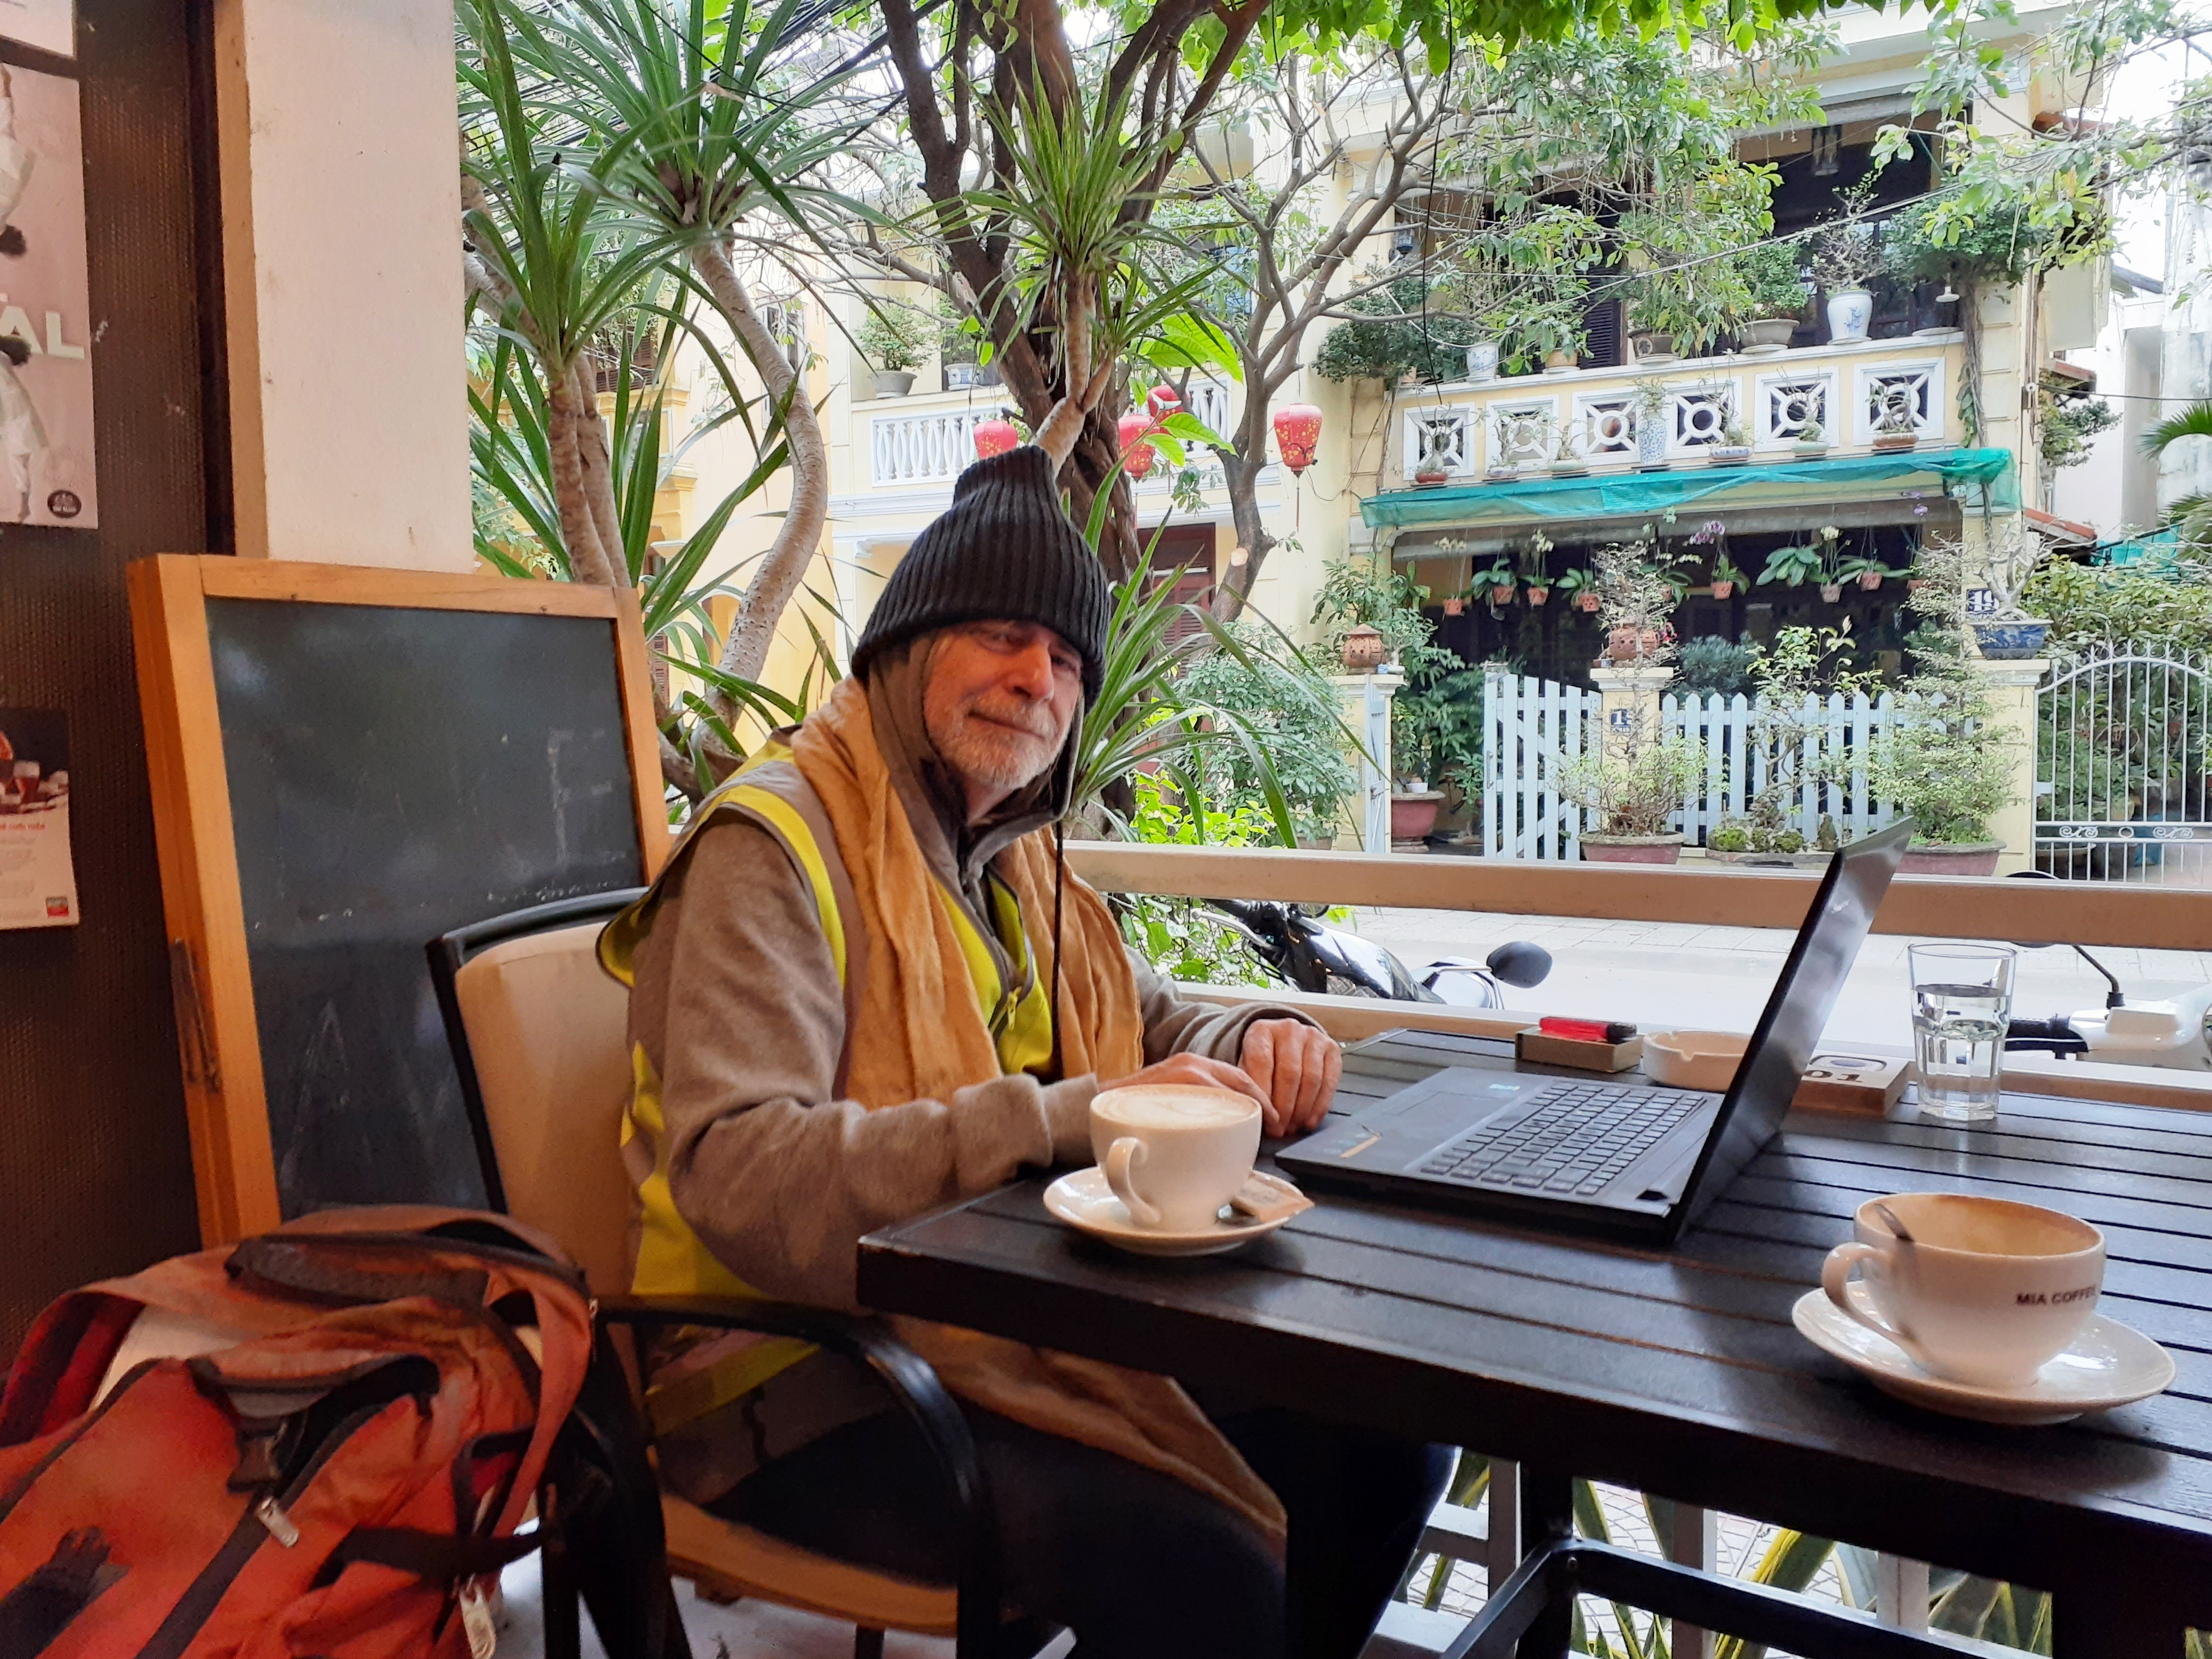 Is it cold enough for you in Vietnam?